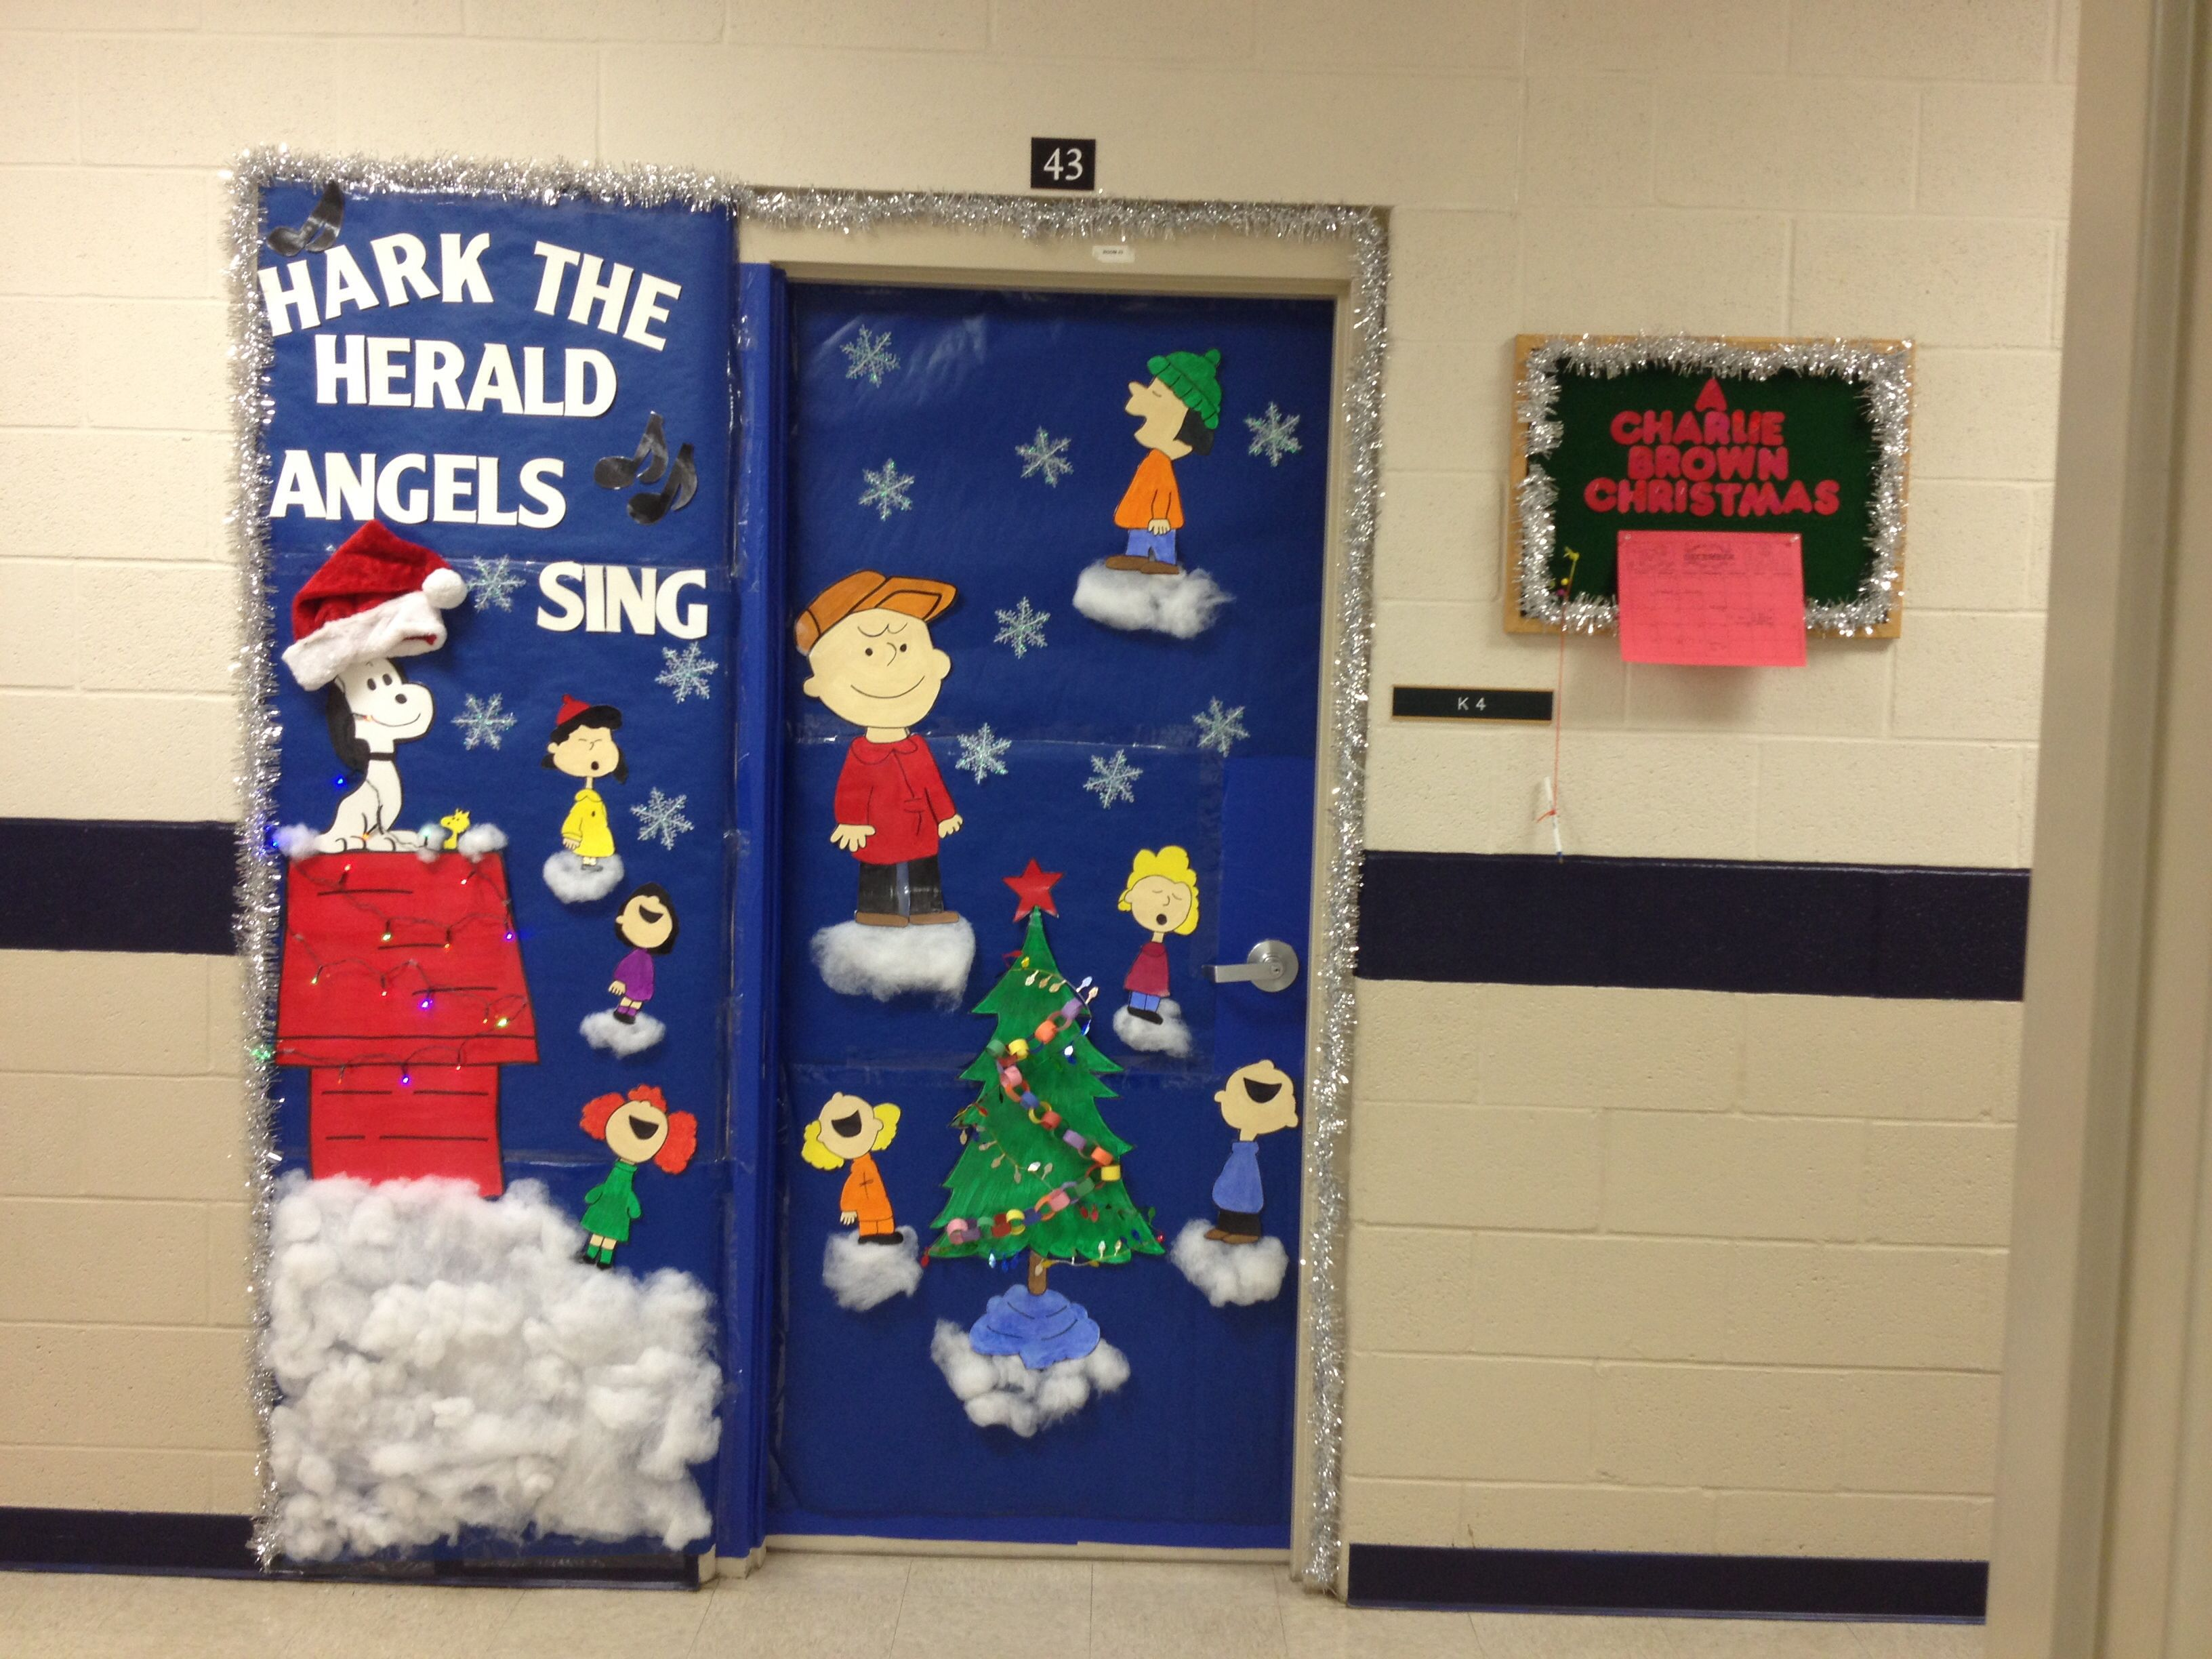 Christmas Classroom Decoration Printables : Charlie brown christmas hark the herald angels sing